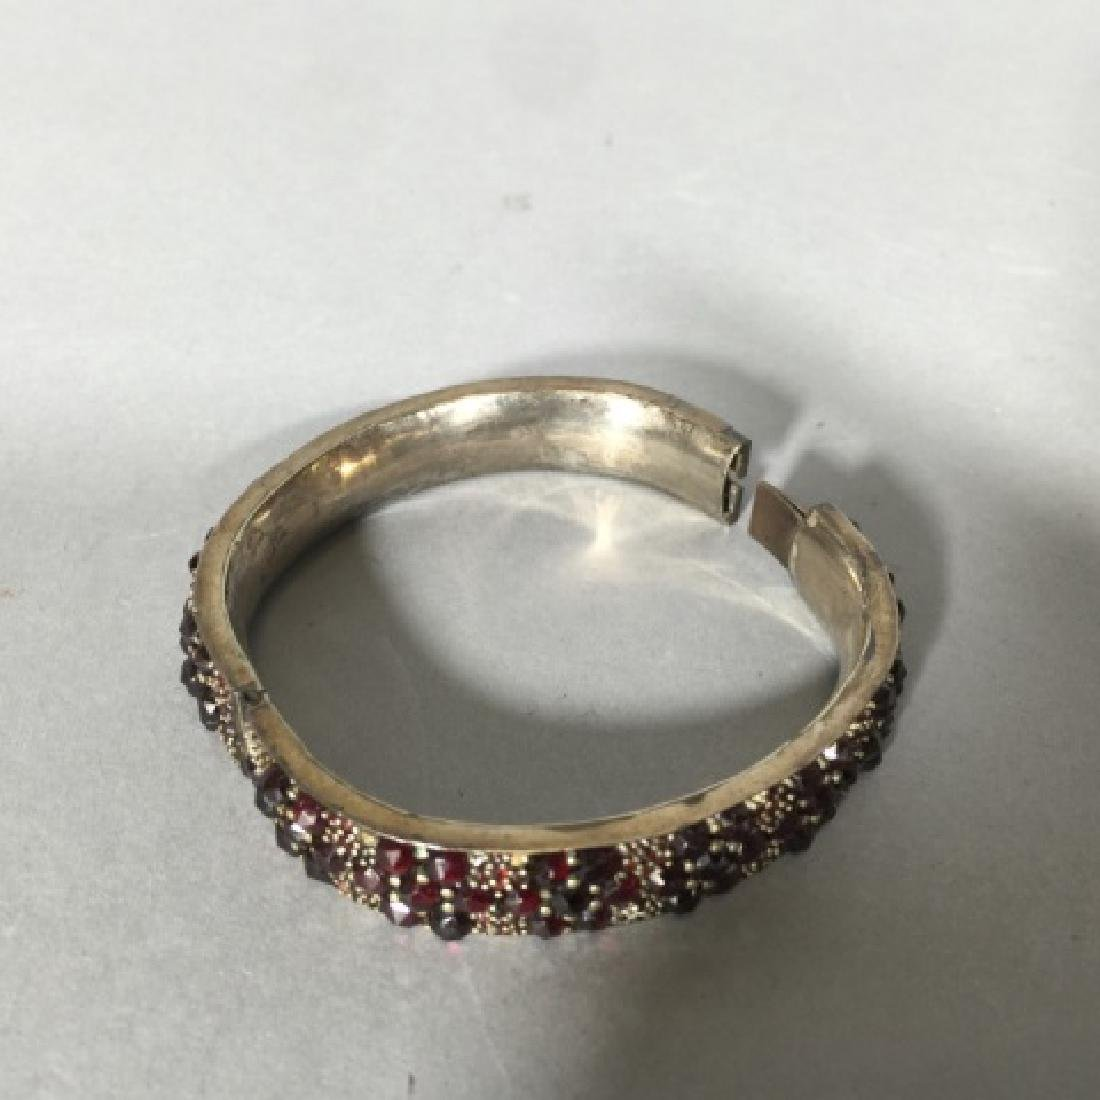 Antique 19th C Rose Cut Garnet Bangle Bracelet - 3